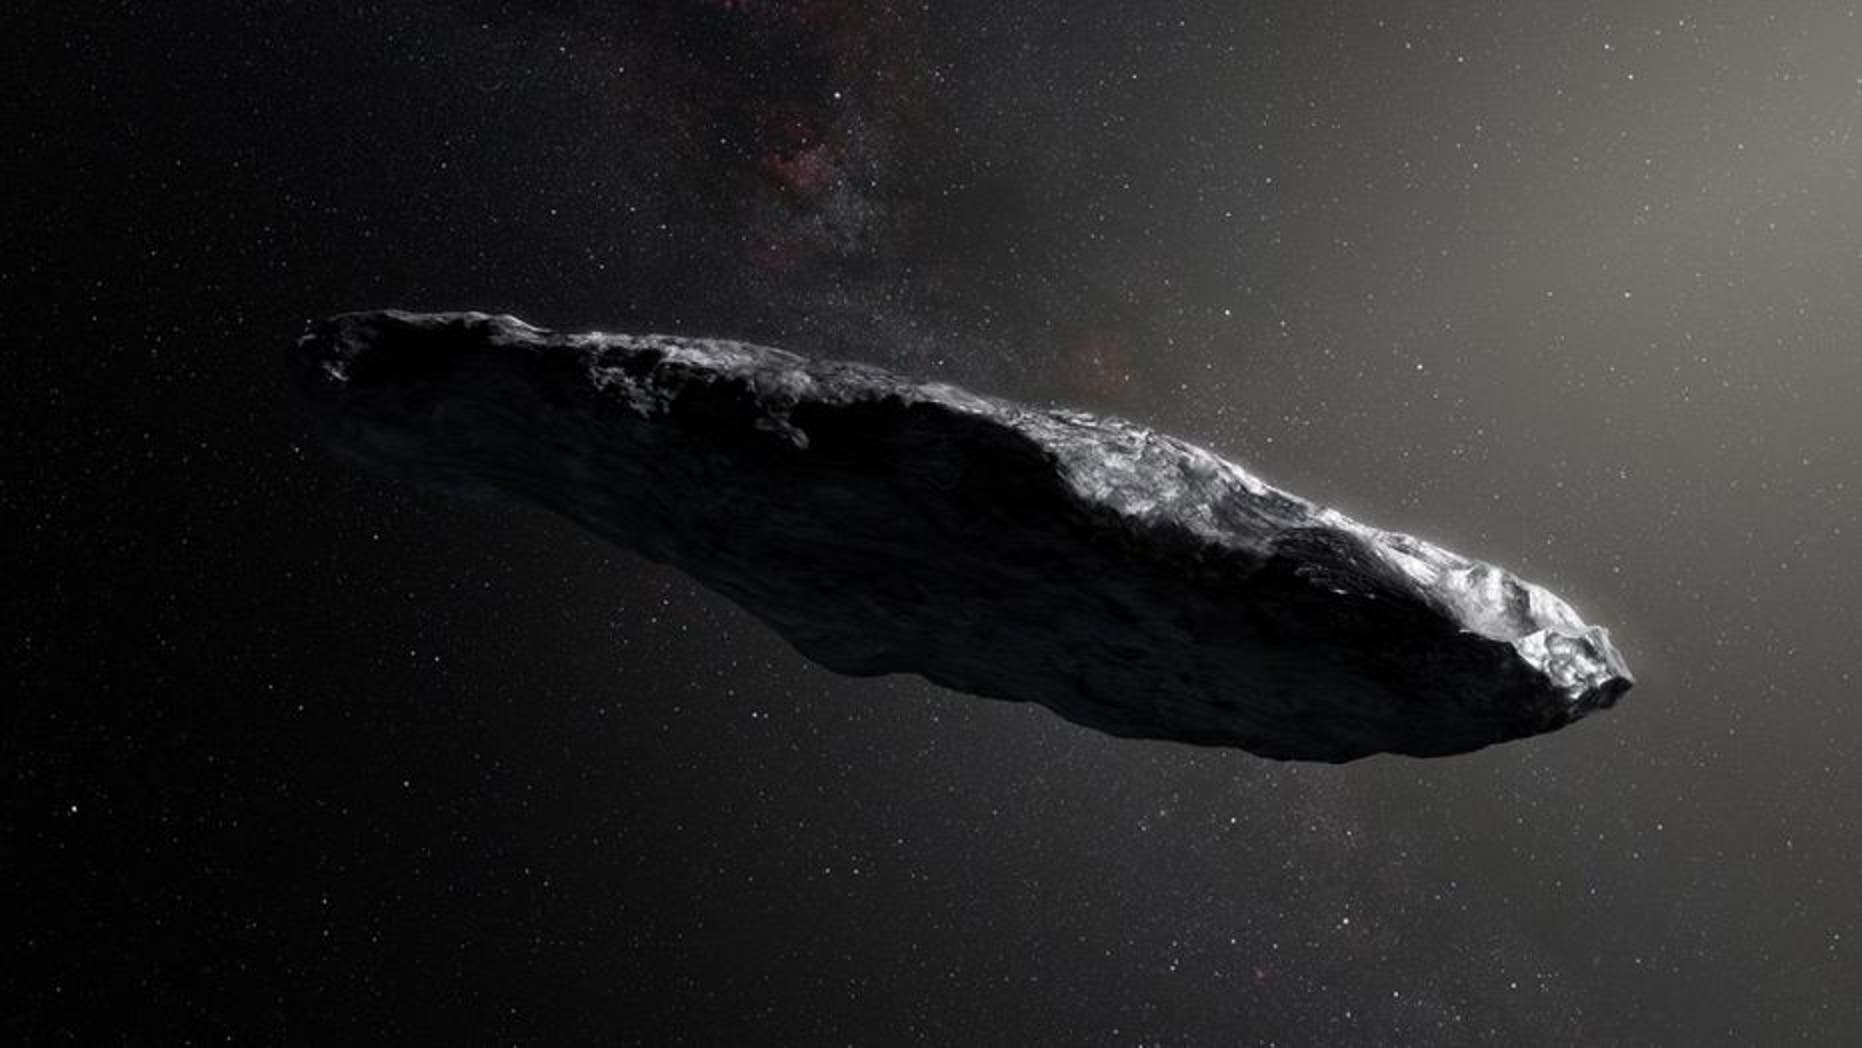 Mysterious interstellar object floating in space might be alien, say Harvard researchers